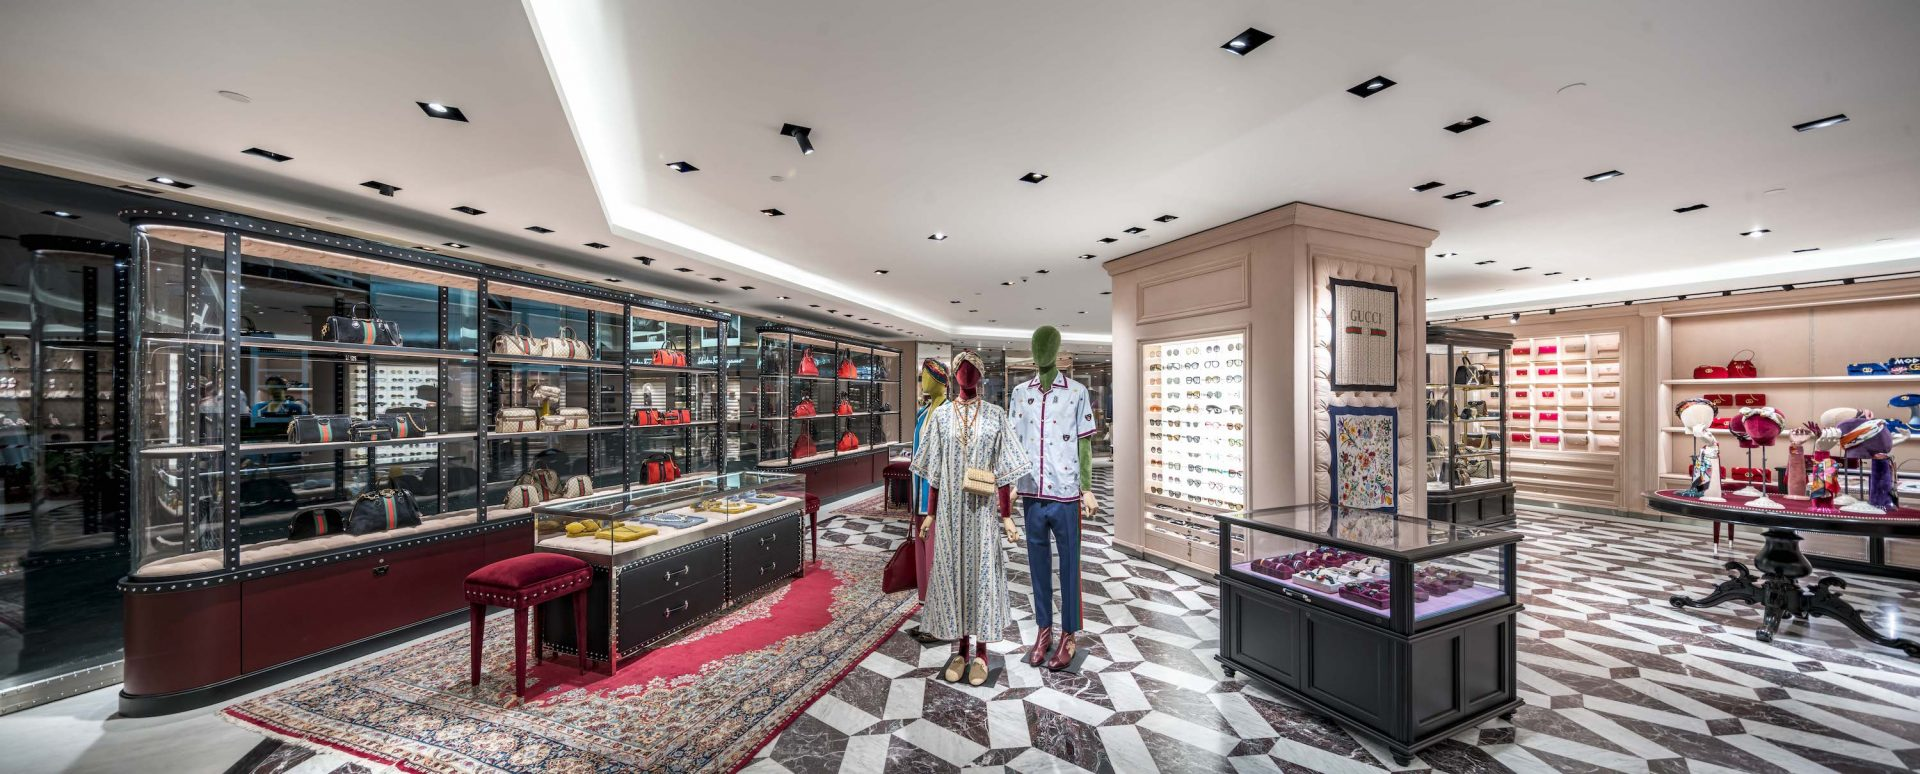 9e87c3d11 Gucci revamps its Paragon store offering 10,000 square feet of branded  paradise